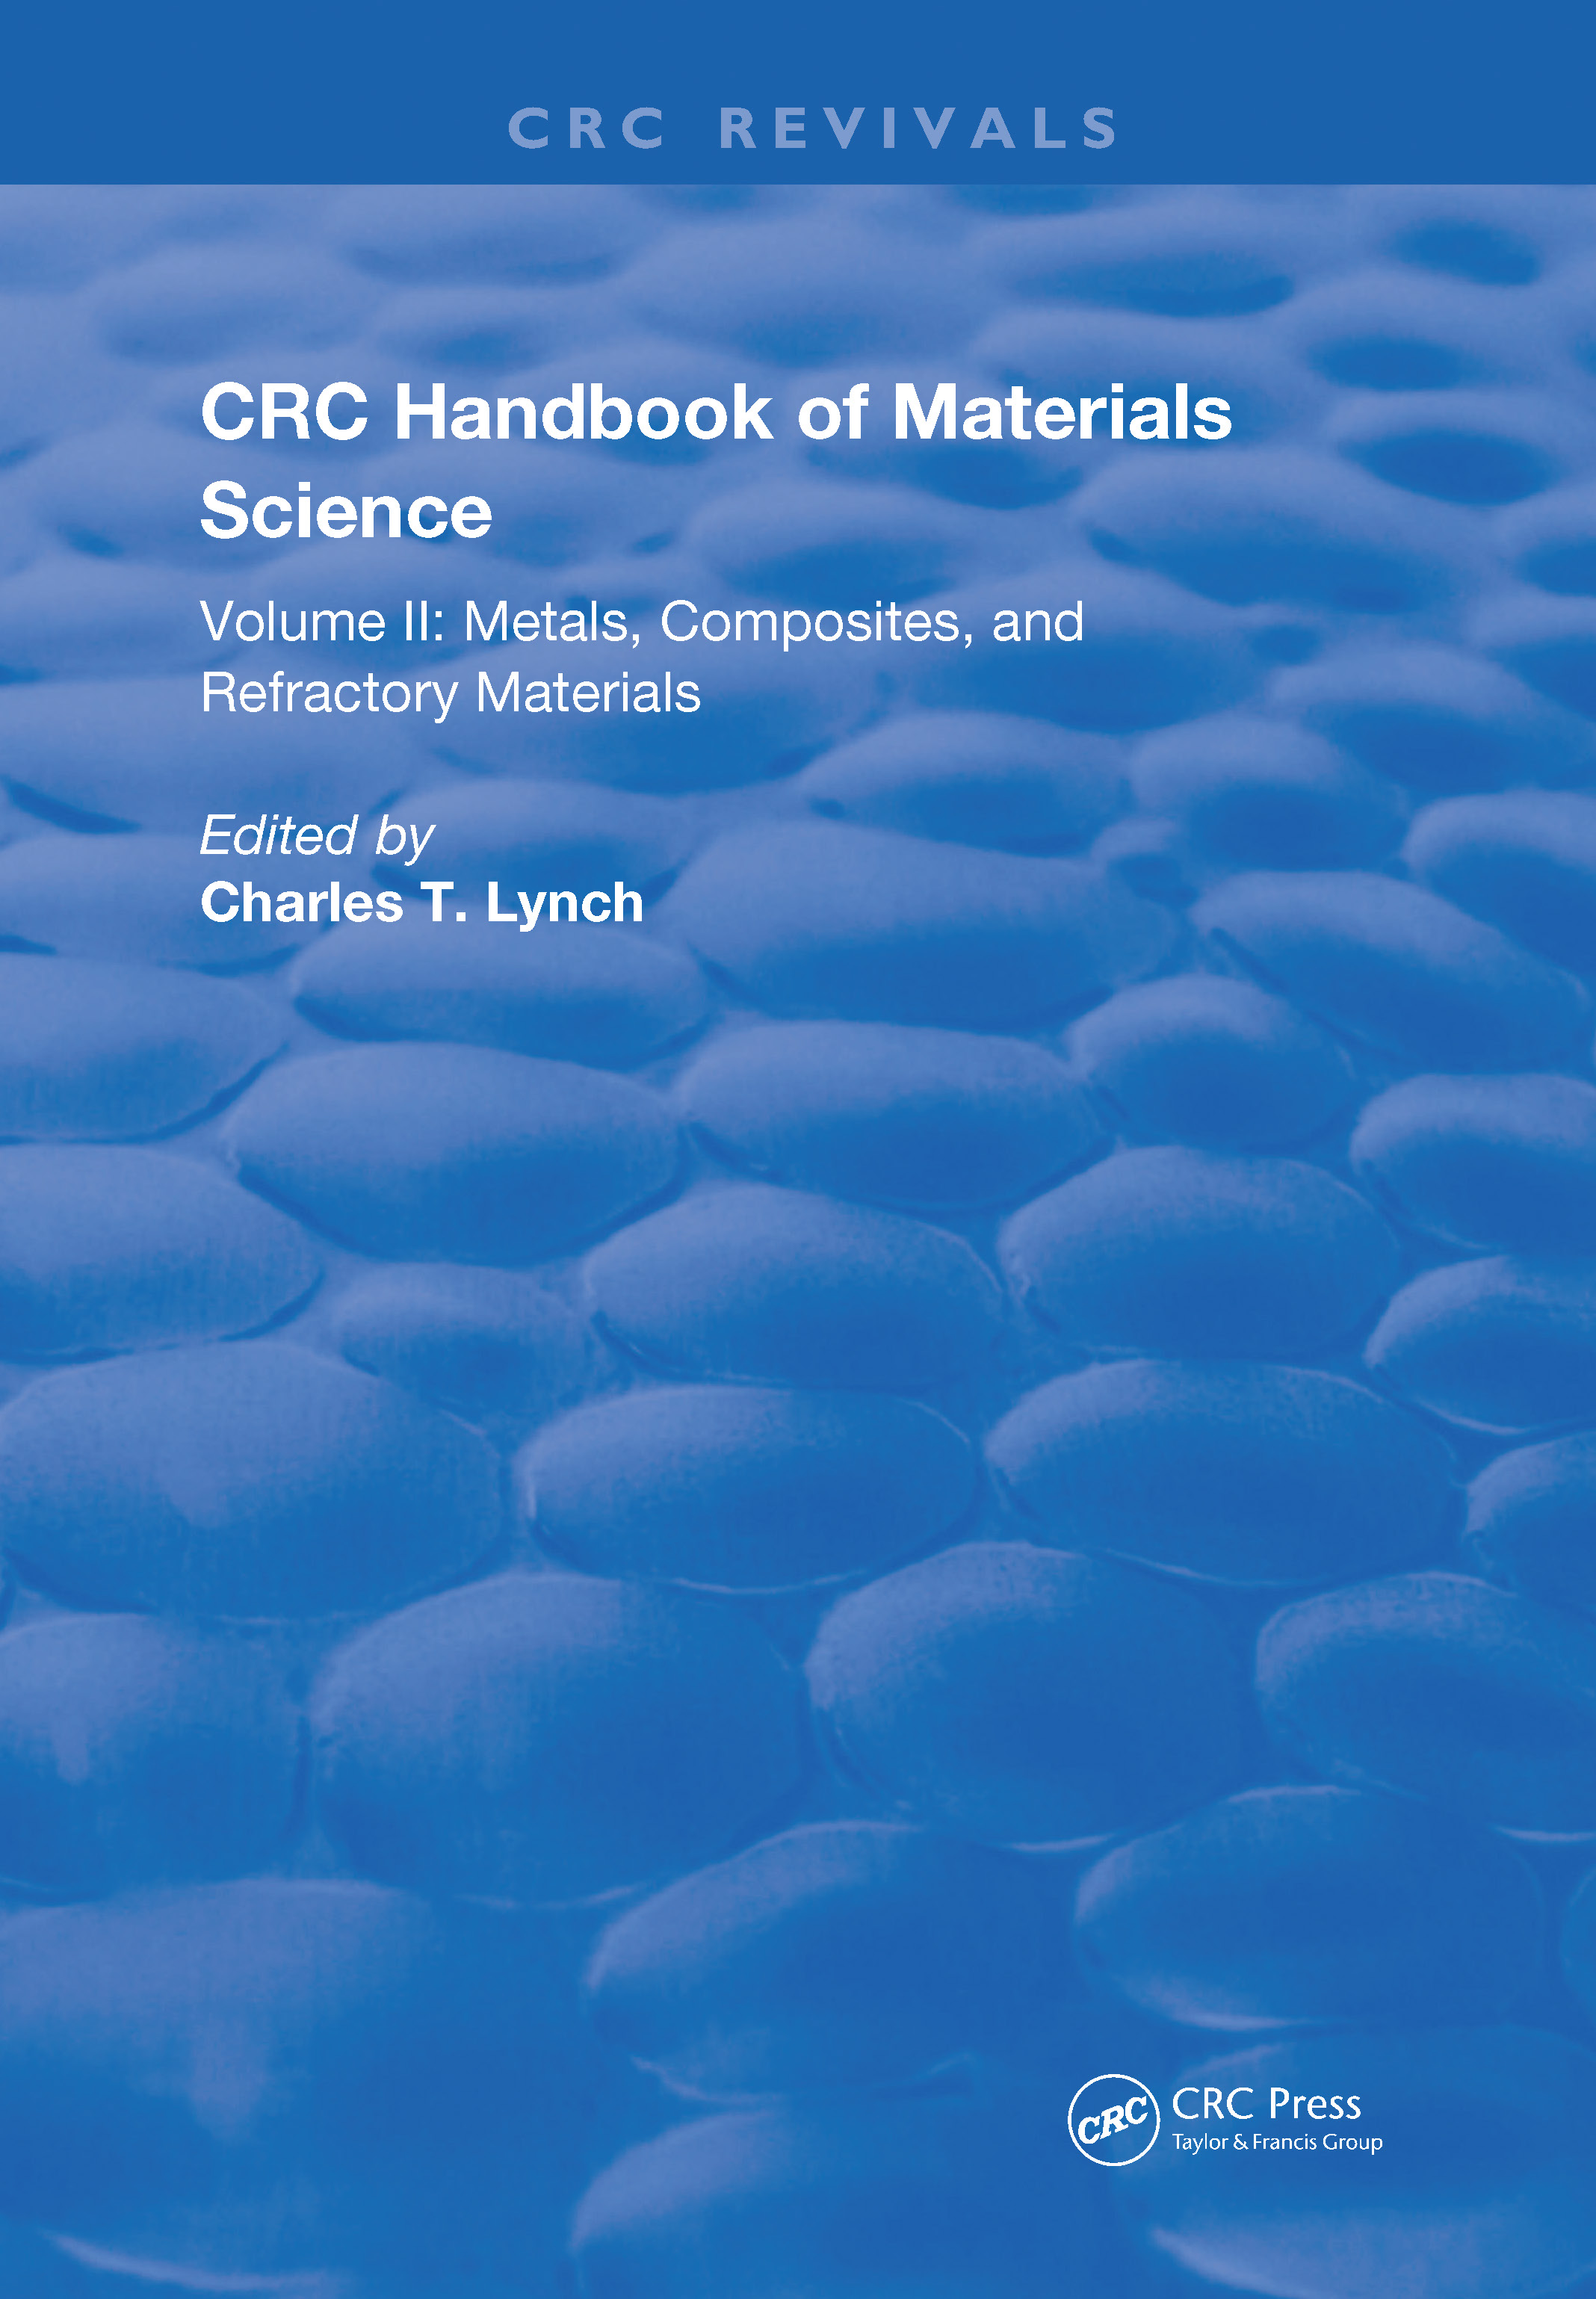 CRC Handbook of Materials Science: Material Composites and Refractory Materials book cover